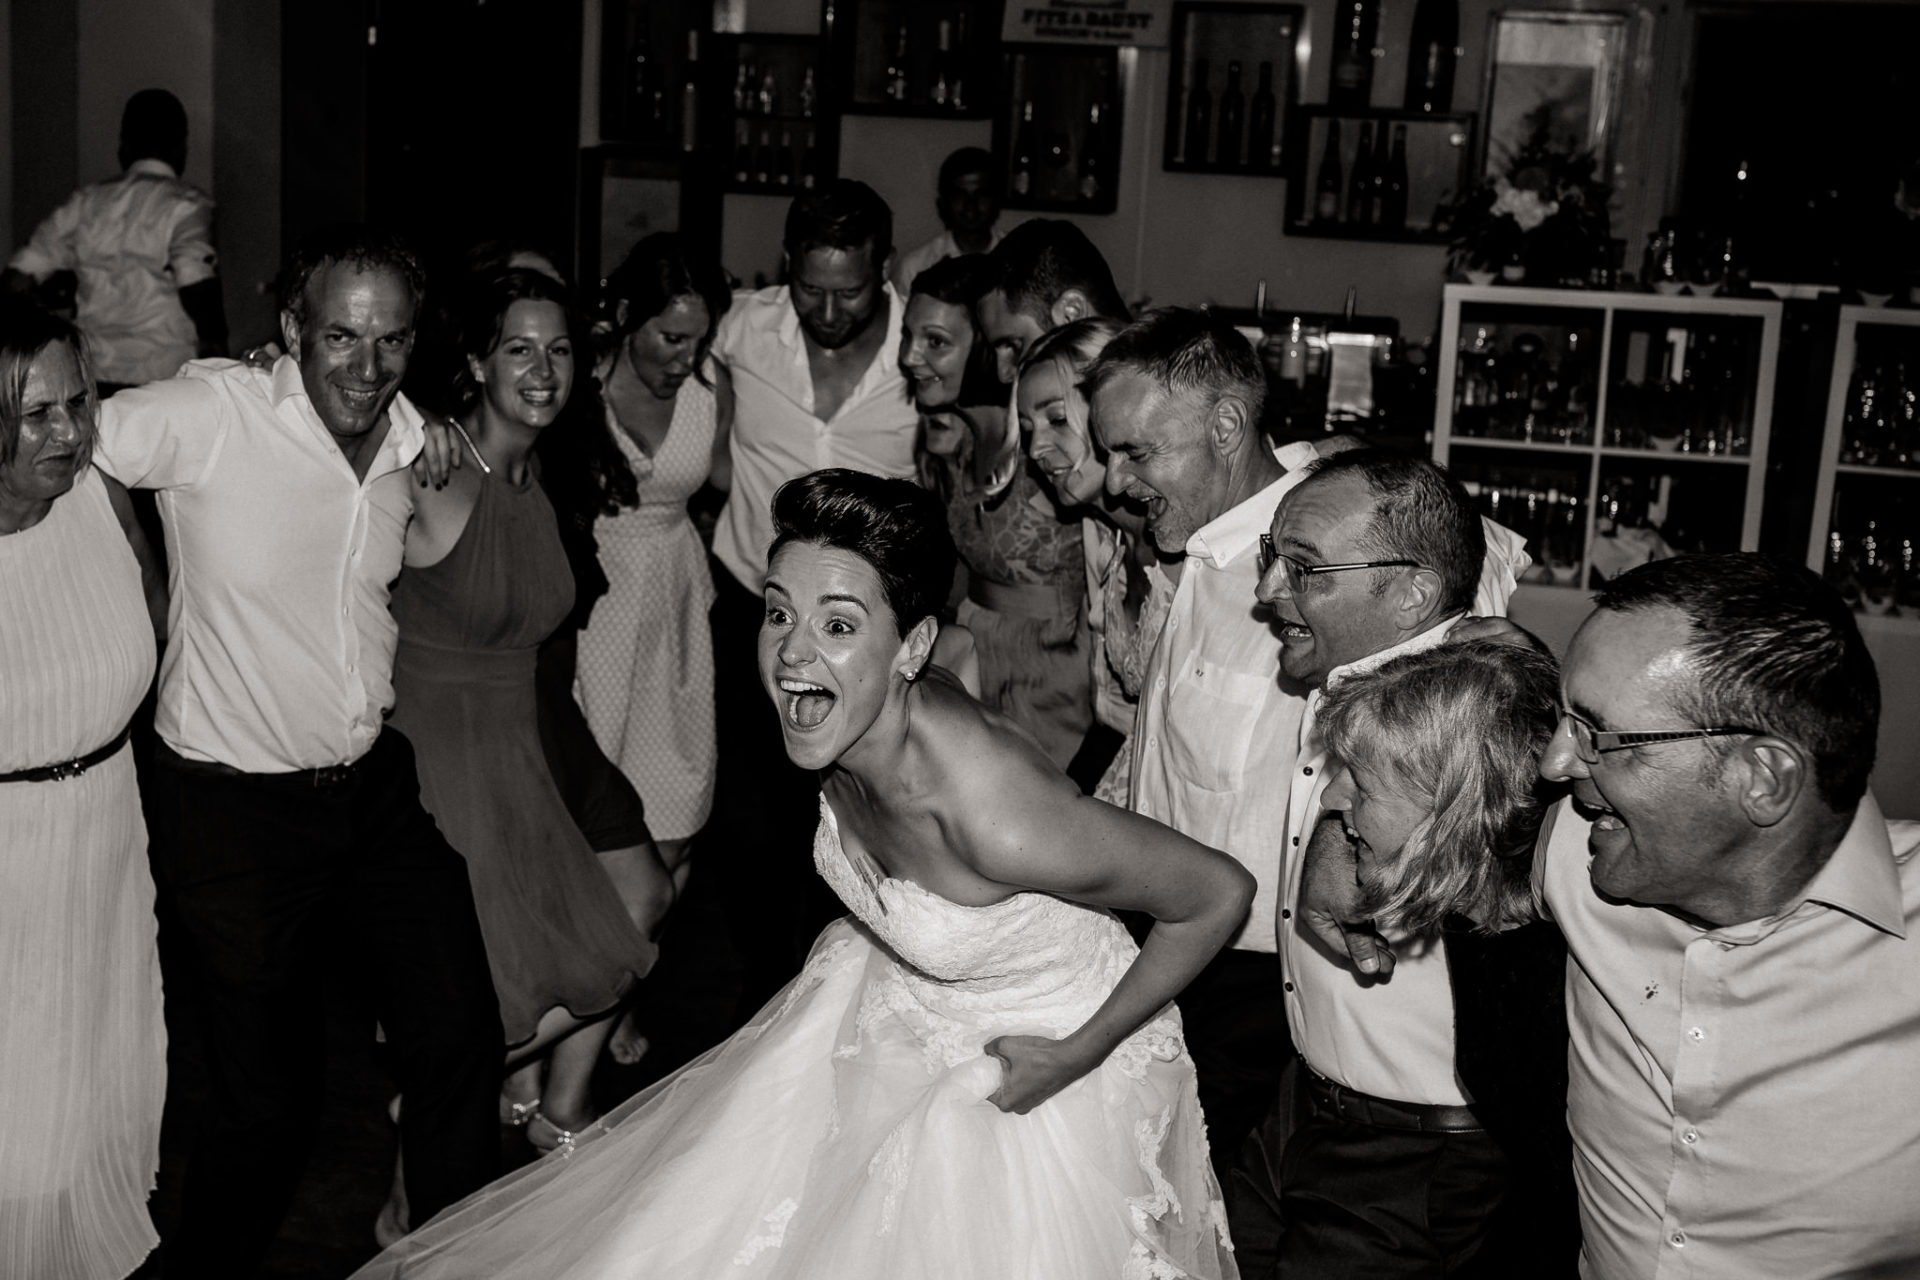 vineyard wedding germany-weingut fitz ritter wedding photographer pfalz party dancing bride